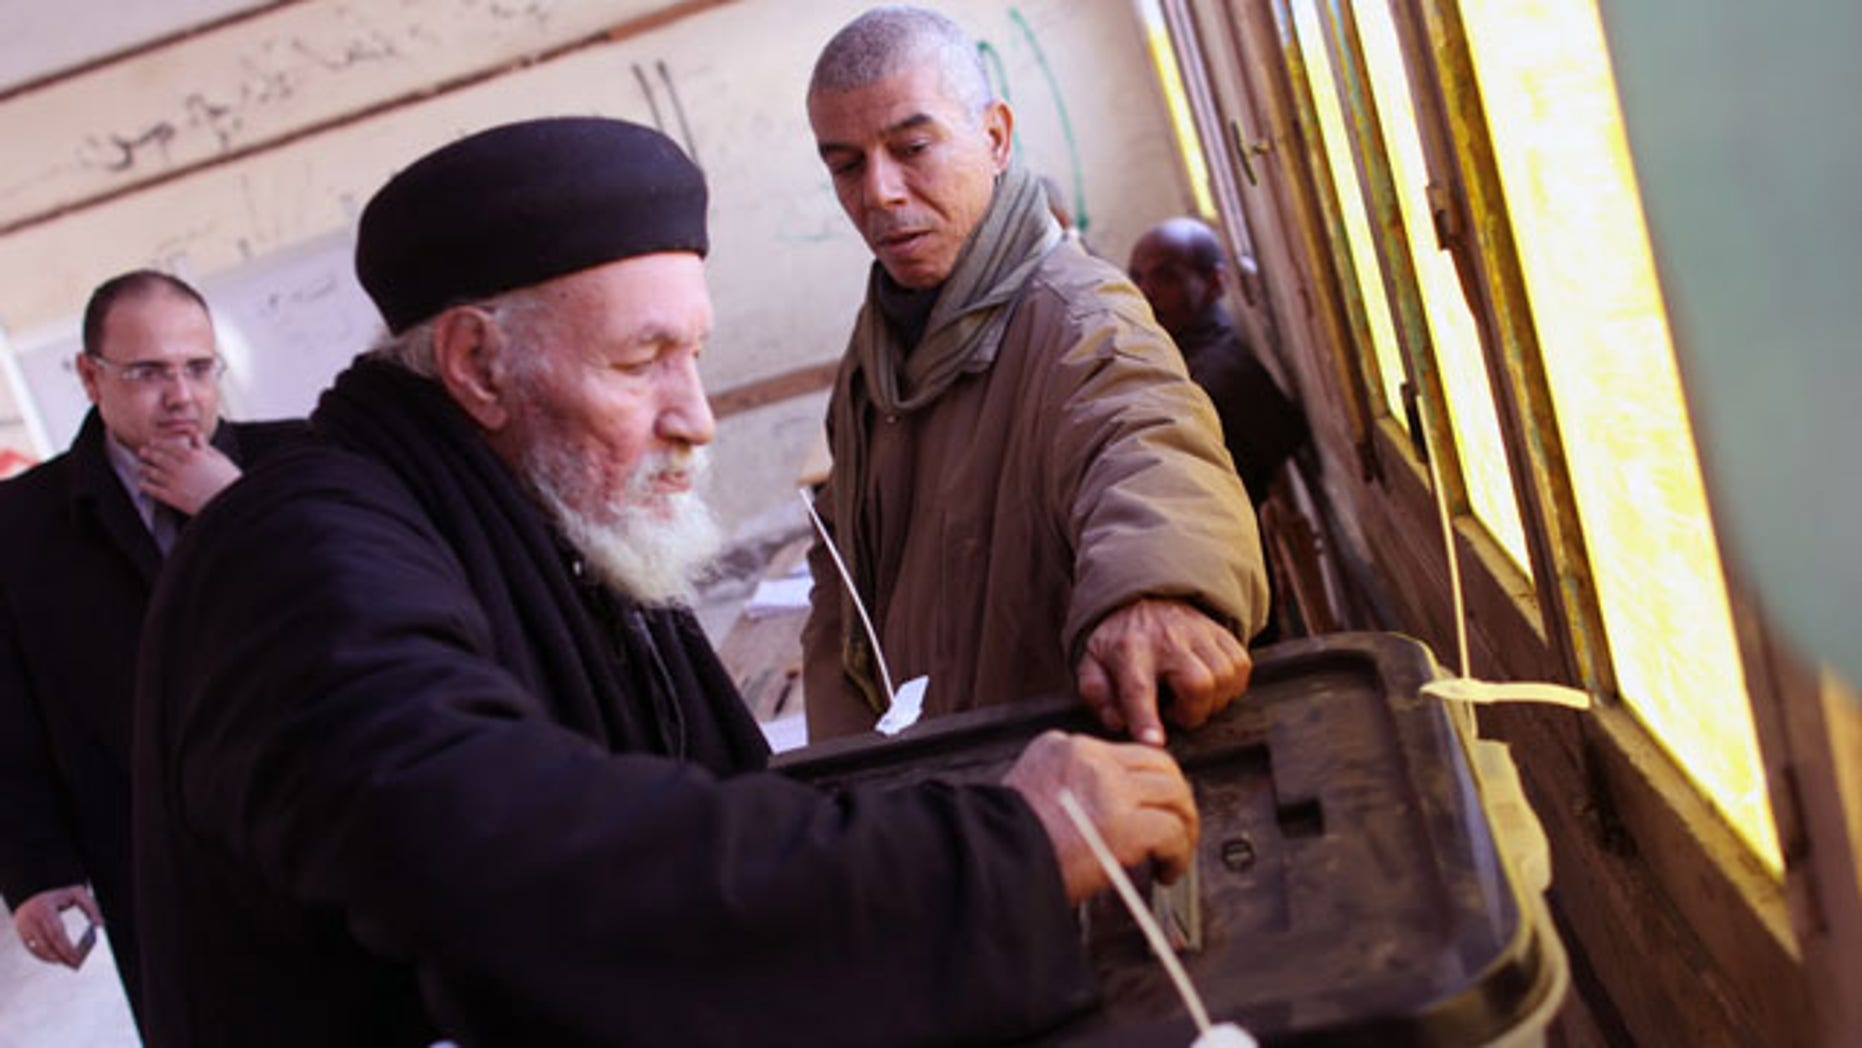 """January 15, 2014: Father Antonious casts his ballot in a constitutional referendum inside a polling station in Dalga village of Minya, Egypt. Father Antonious is one of the priests of the Virgin Mary and St. Abraam Monastery that was looted and burned by supporters of ousted Islamist President Mohammed Morsi in August. Christians are voting """"yes"""" on a new charter that criminalizes discrimination and instructs the next legislature to ease restrictions on building churches. (AP Photo/Roger Anis, El Shorouk Newspaper)"""